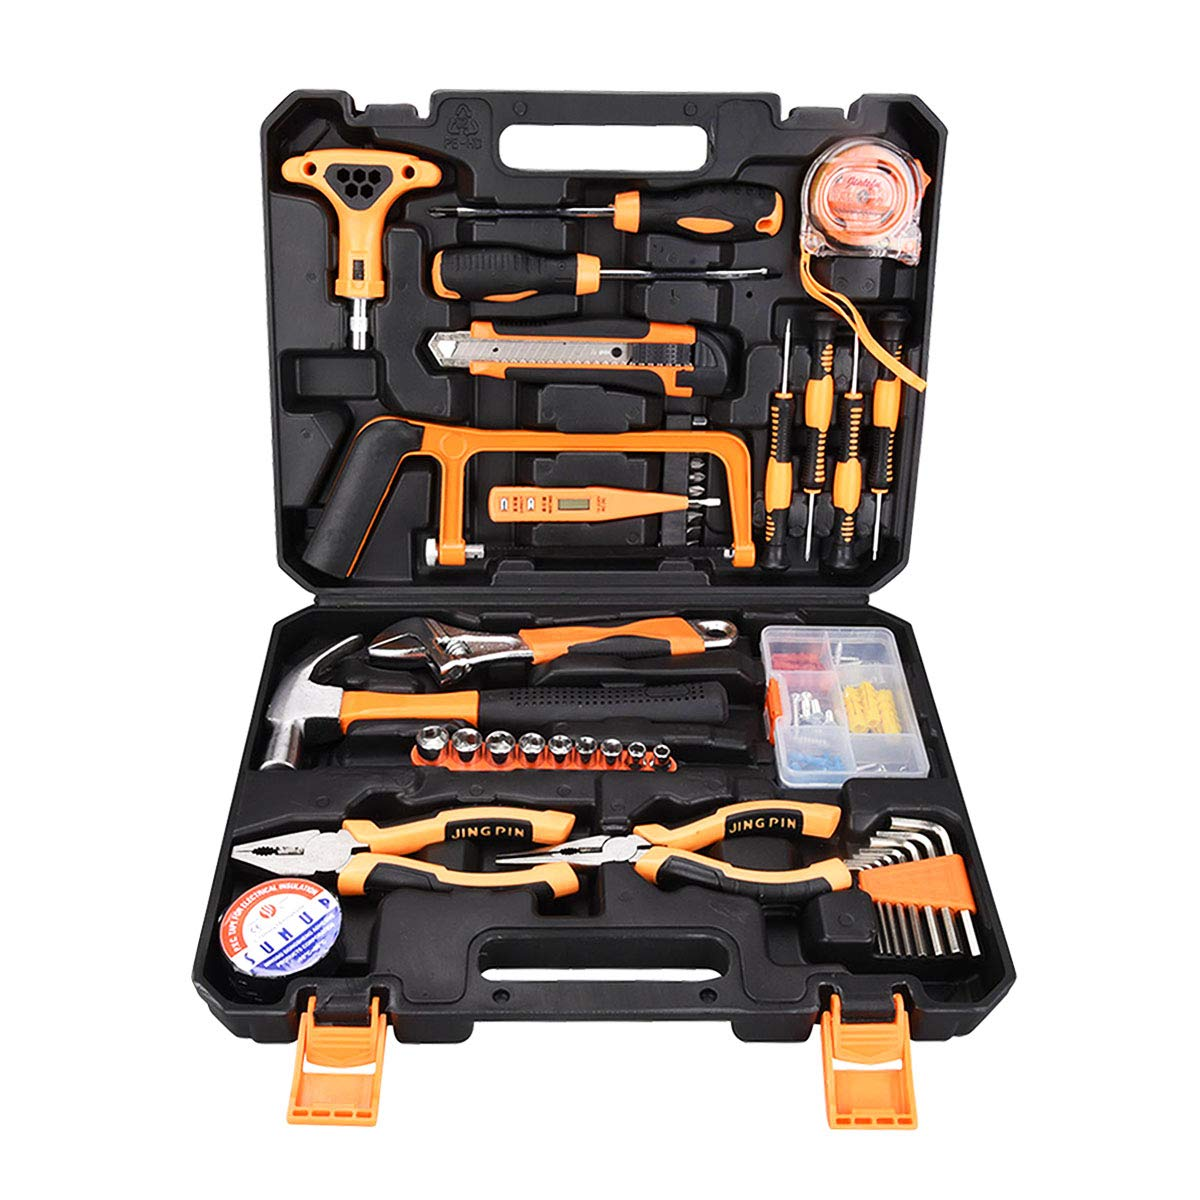 SOLUDE Home Repair Tools Sets,82 Pieces Saw Screwdrivers Sets General Household Hand Tool Kits with Plastic Toolbox Storage Case